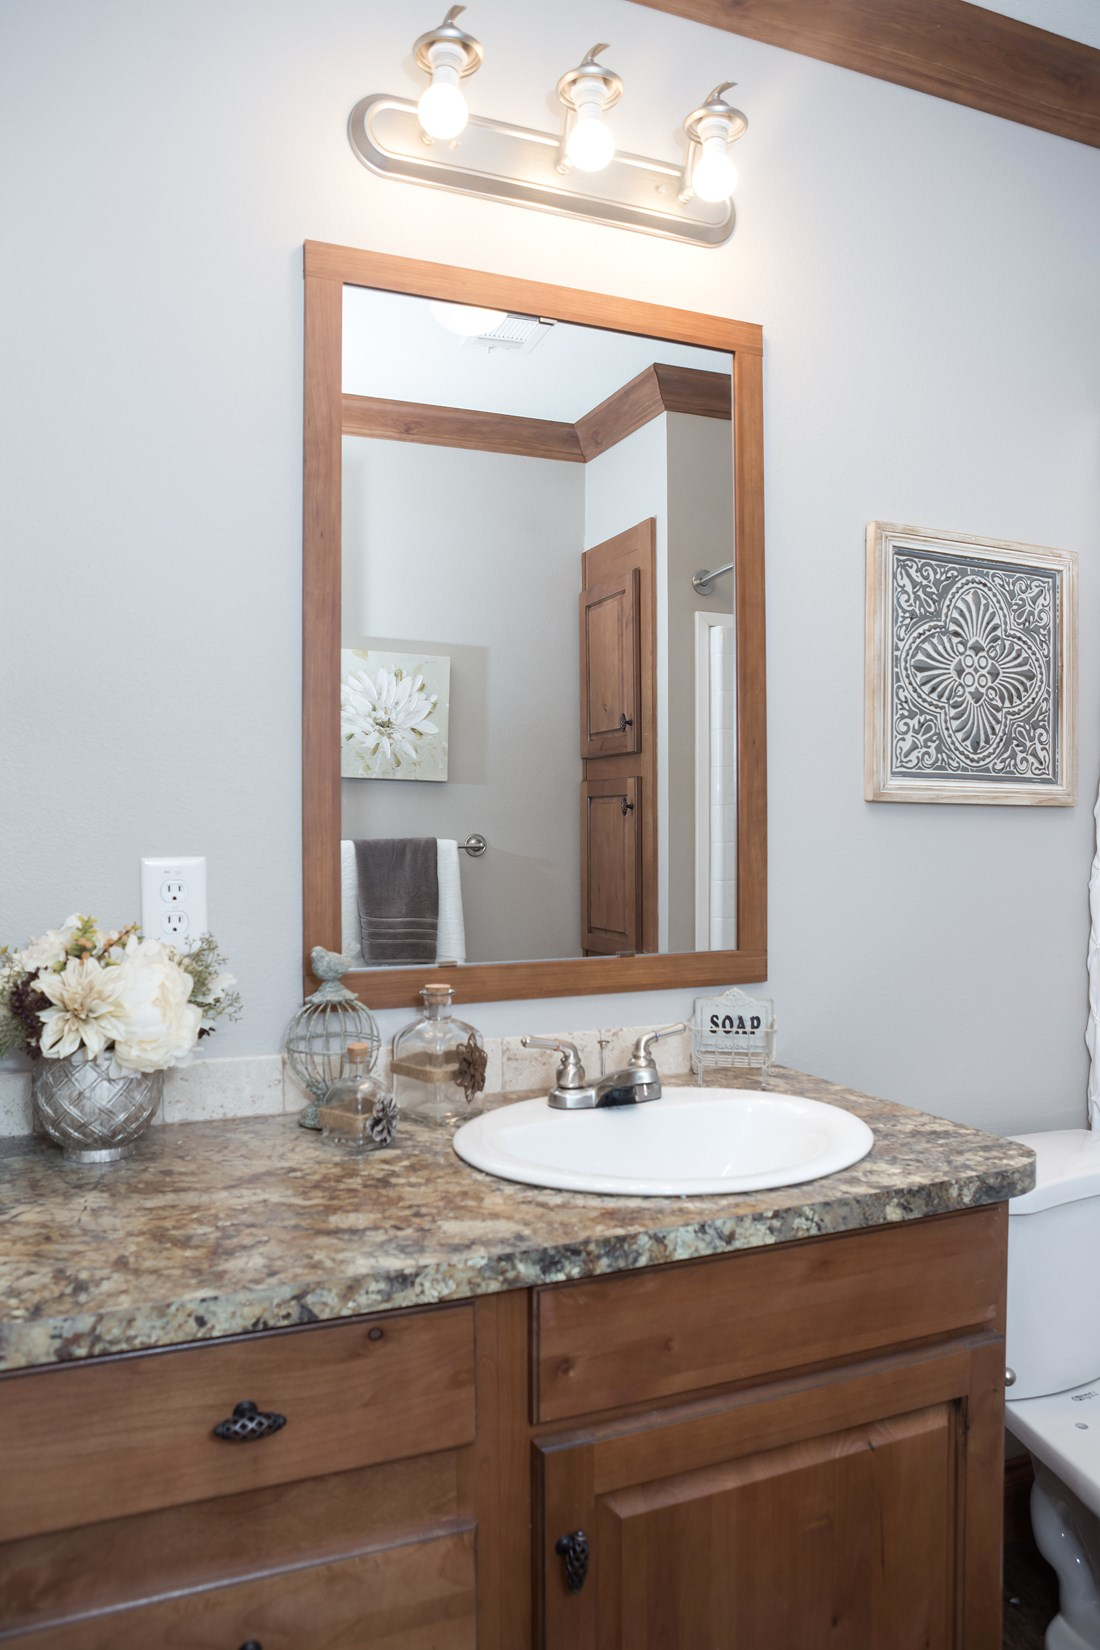 The THE FRANKLIN 28 Master Bathroom. This Manufactured Mobile Home features 4 bedrooms and 2 baths.